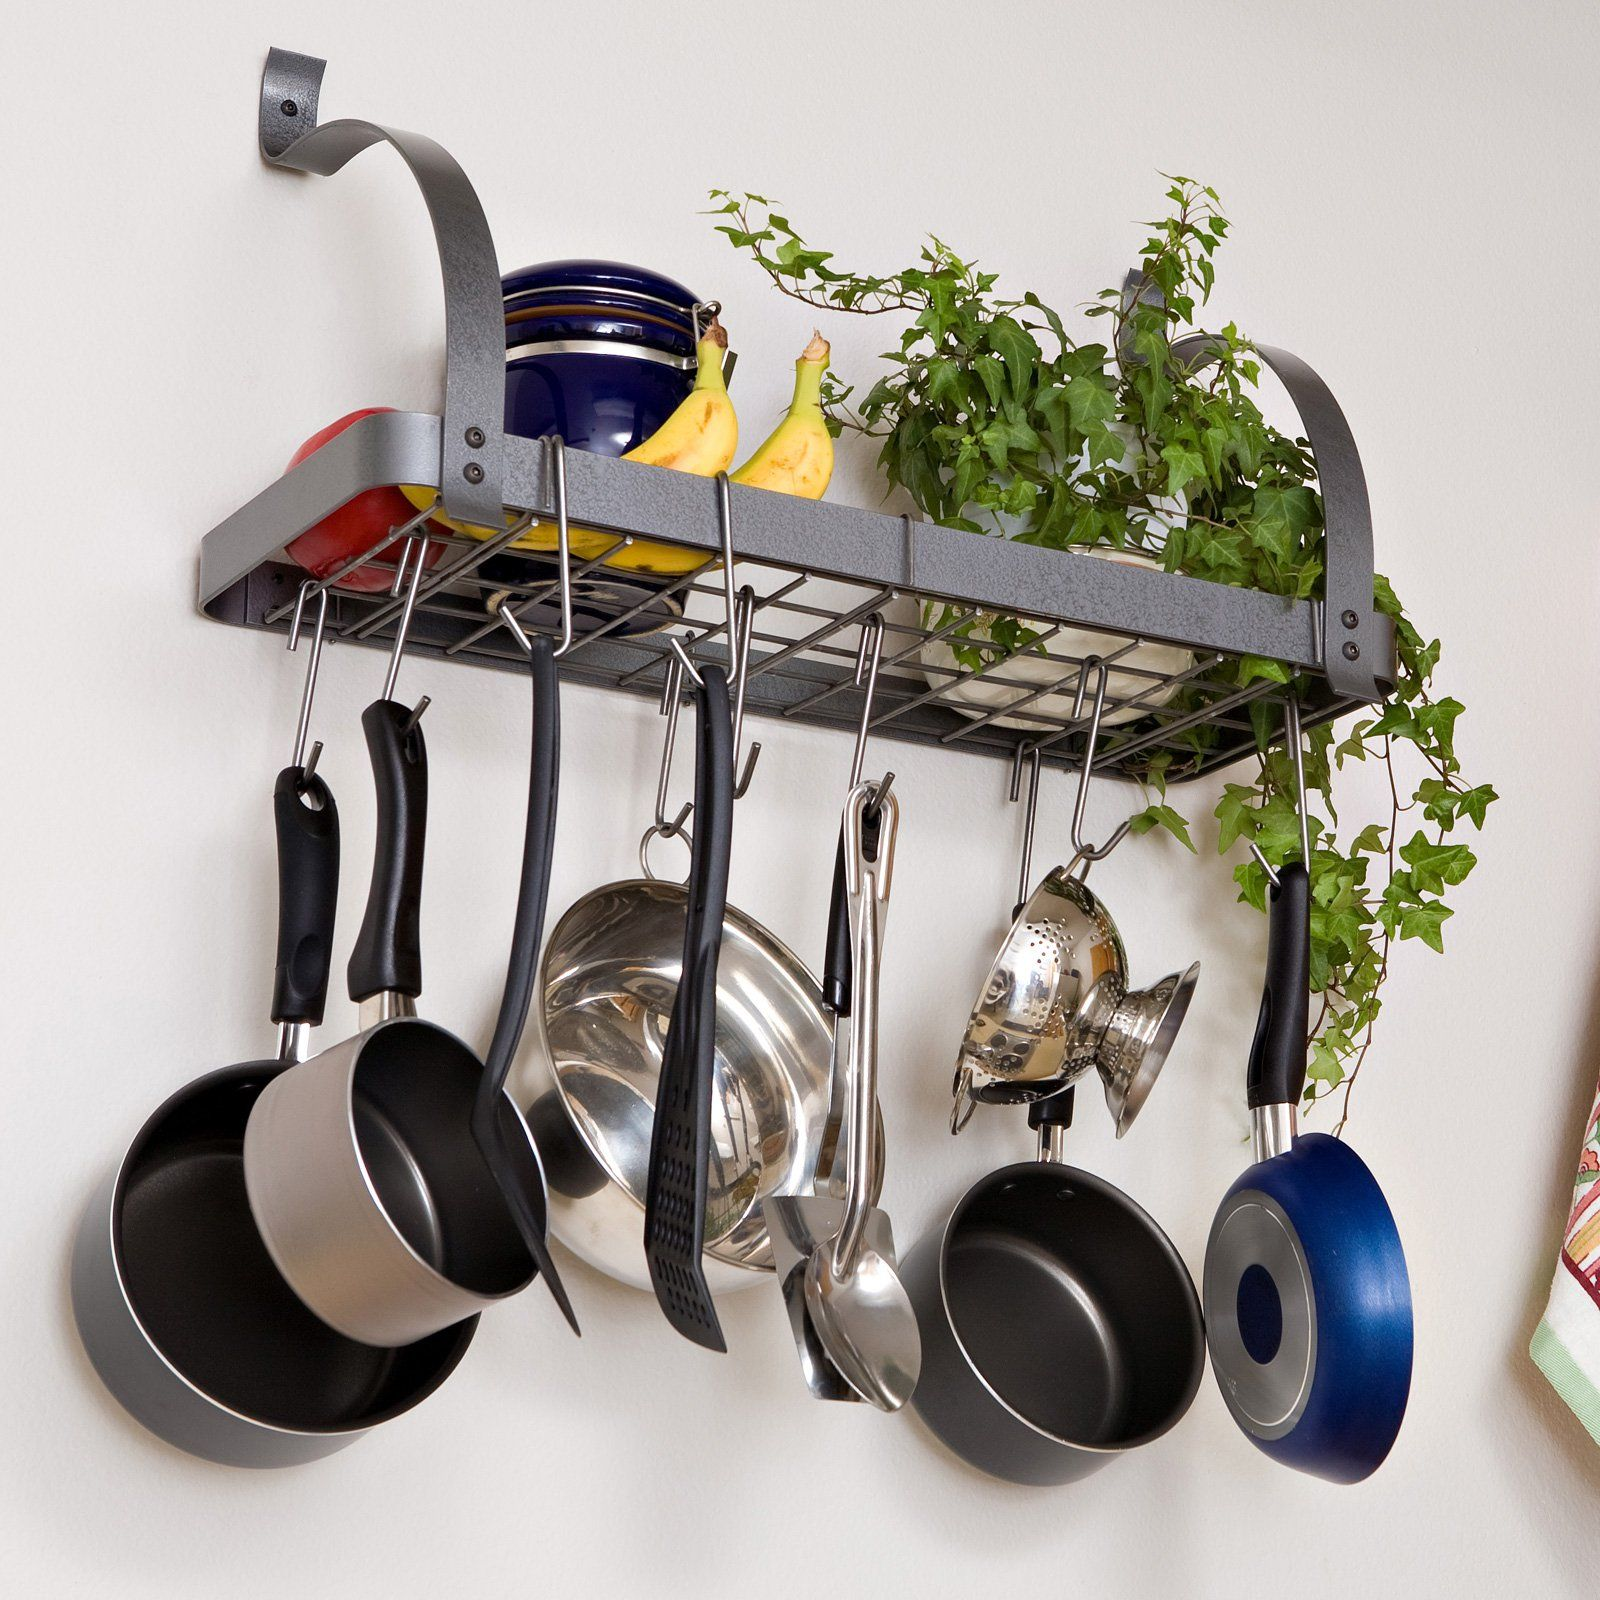 rack make kitchen a and improvements img for pallet pot home pots greenpoint pans